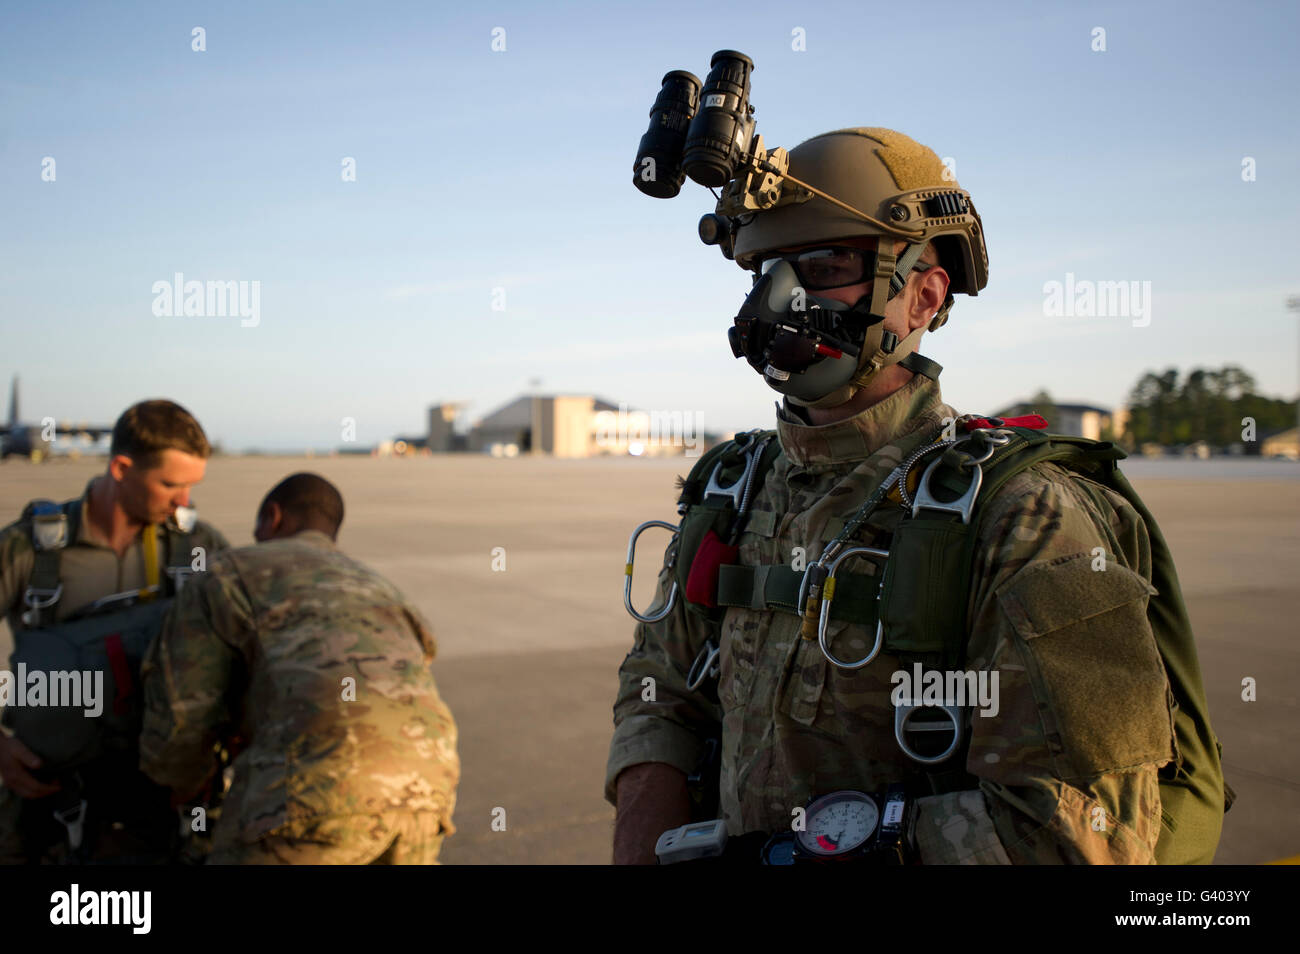 A Green Beret waits to have his gear inspected. - Stock Image